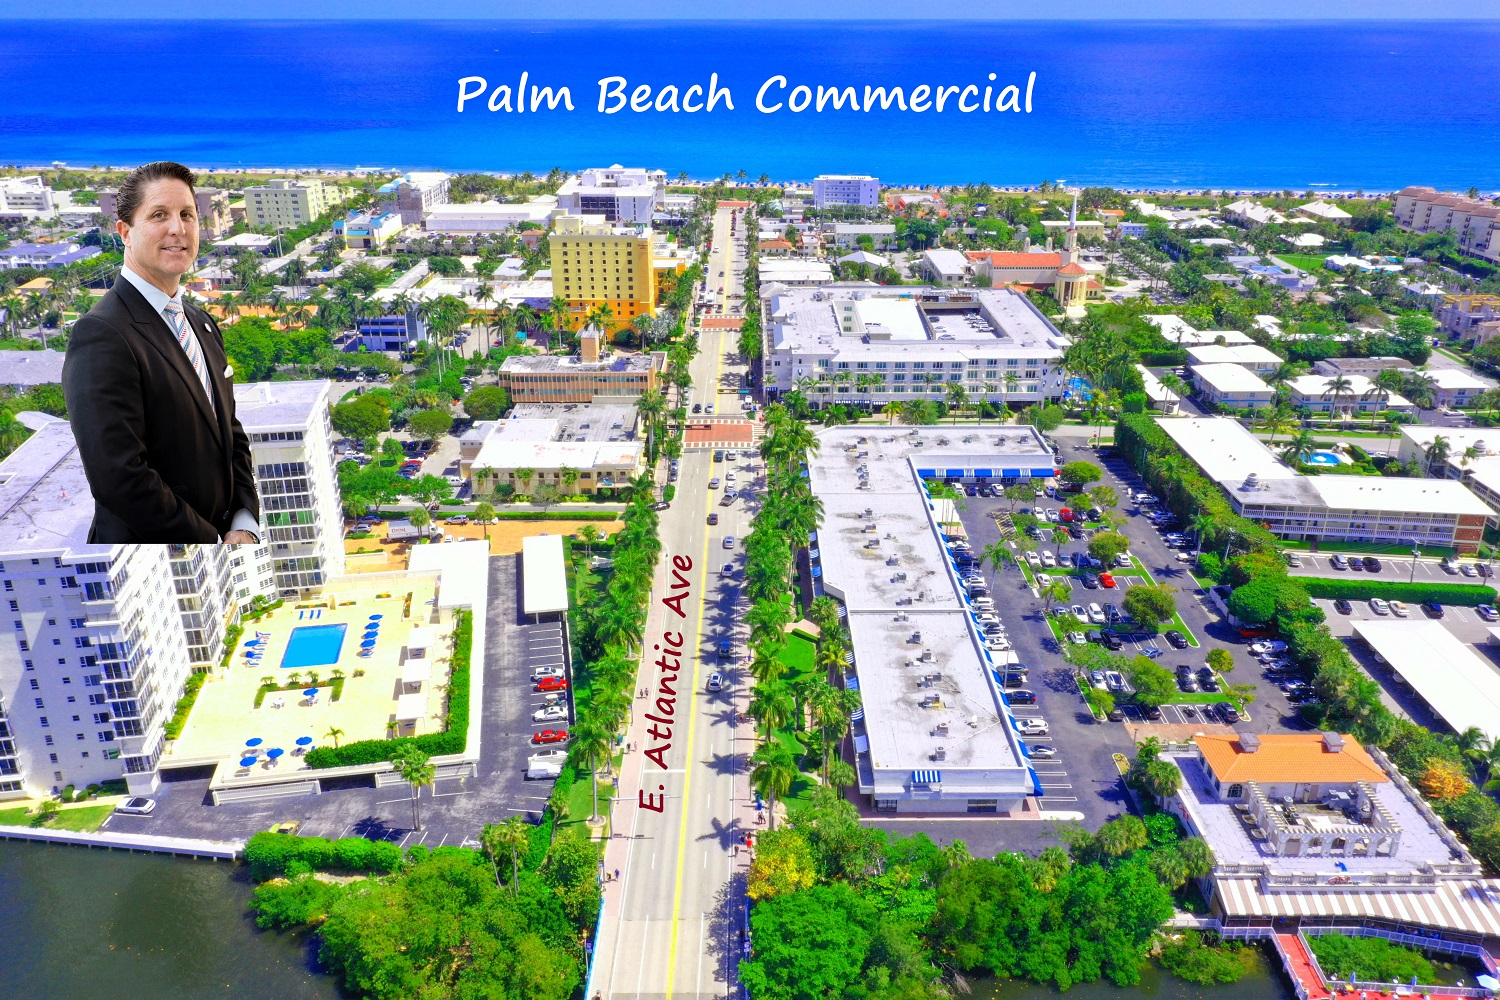 Downtown Delray Beach Commercial